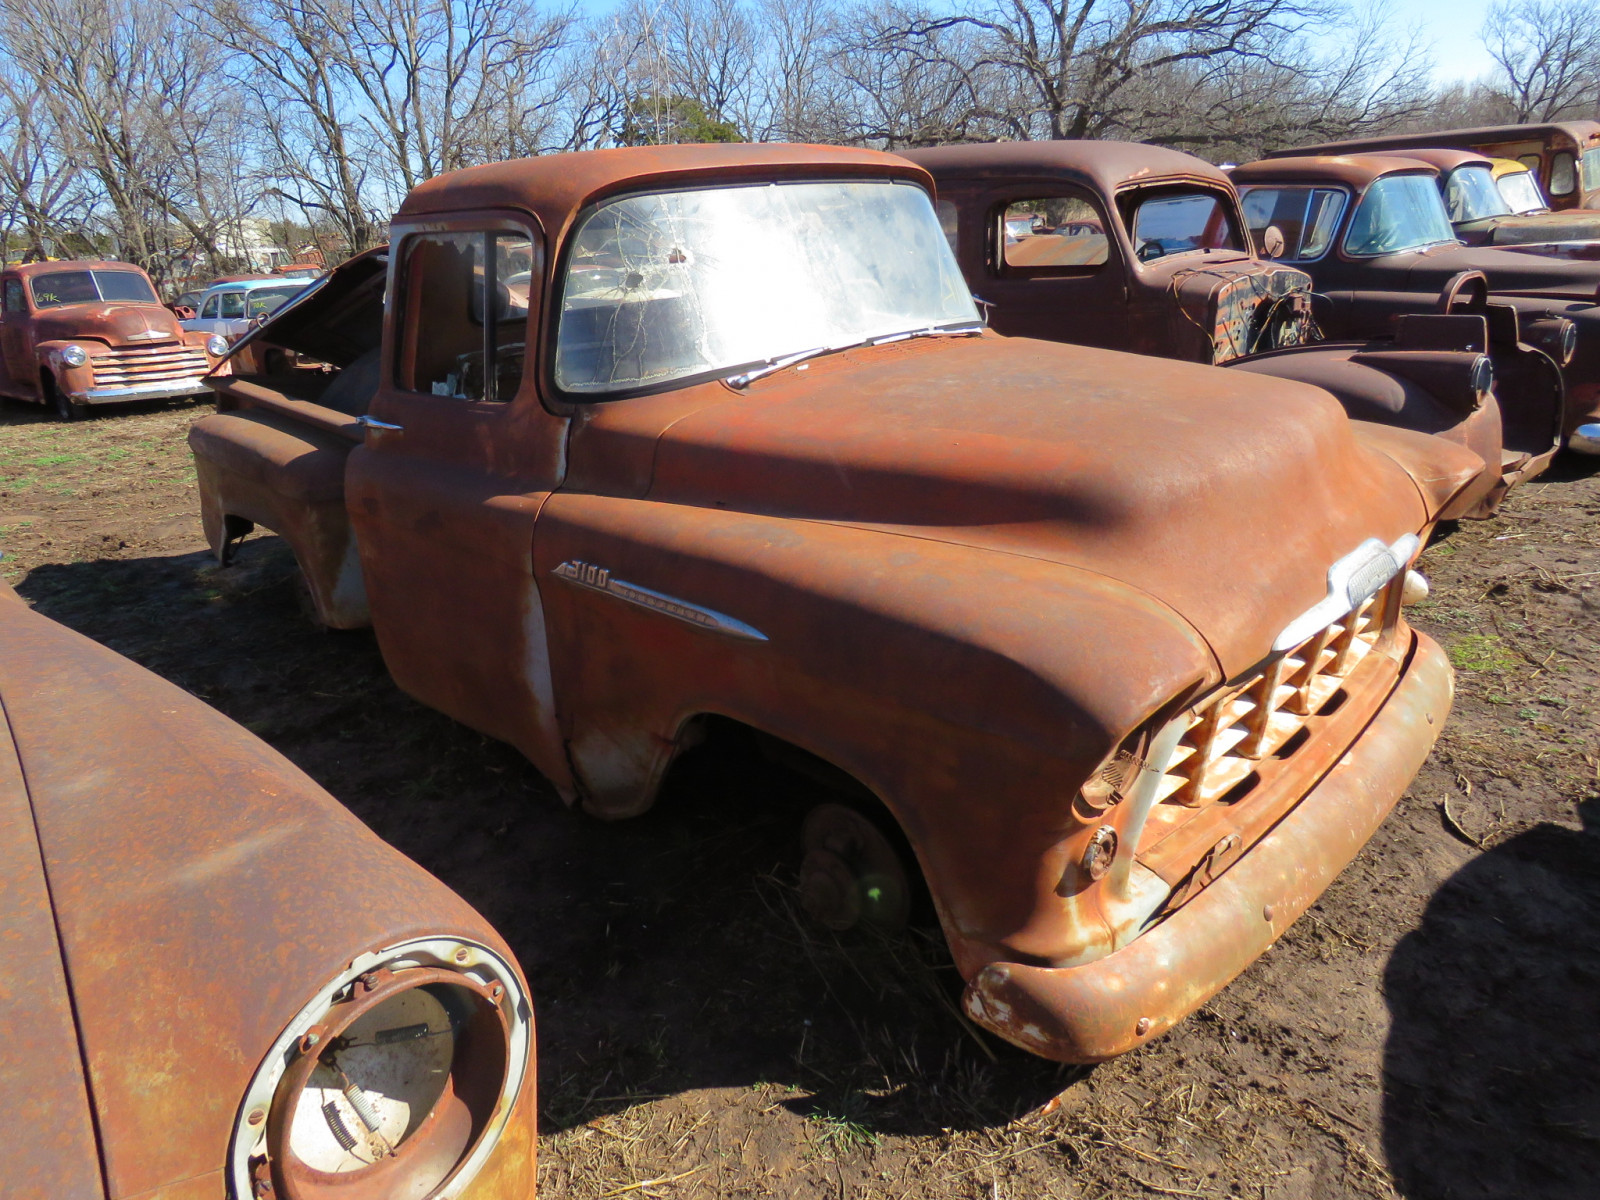 1955 Chevrolet 3100 Stepside Pickup - Image 2